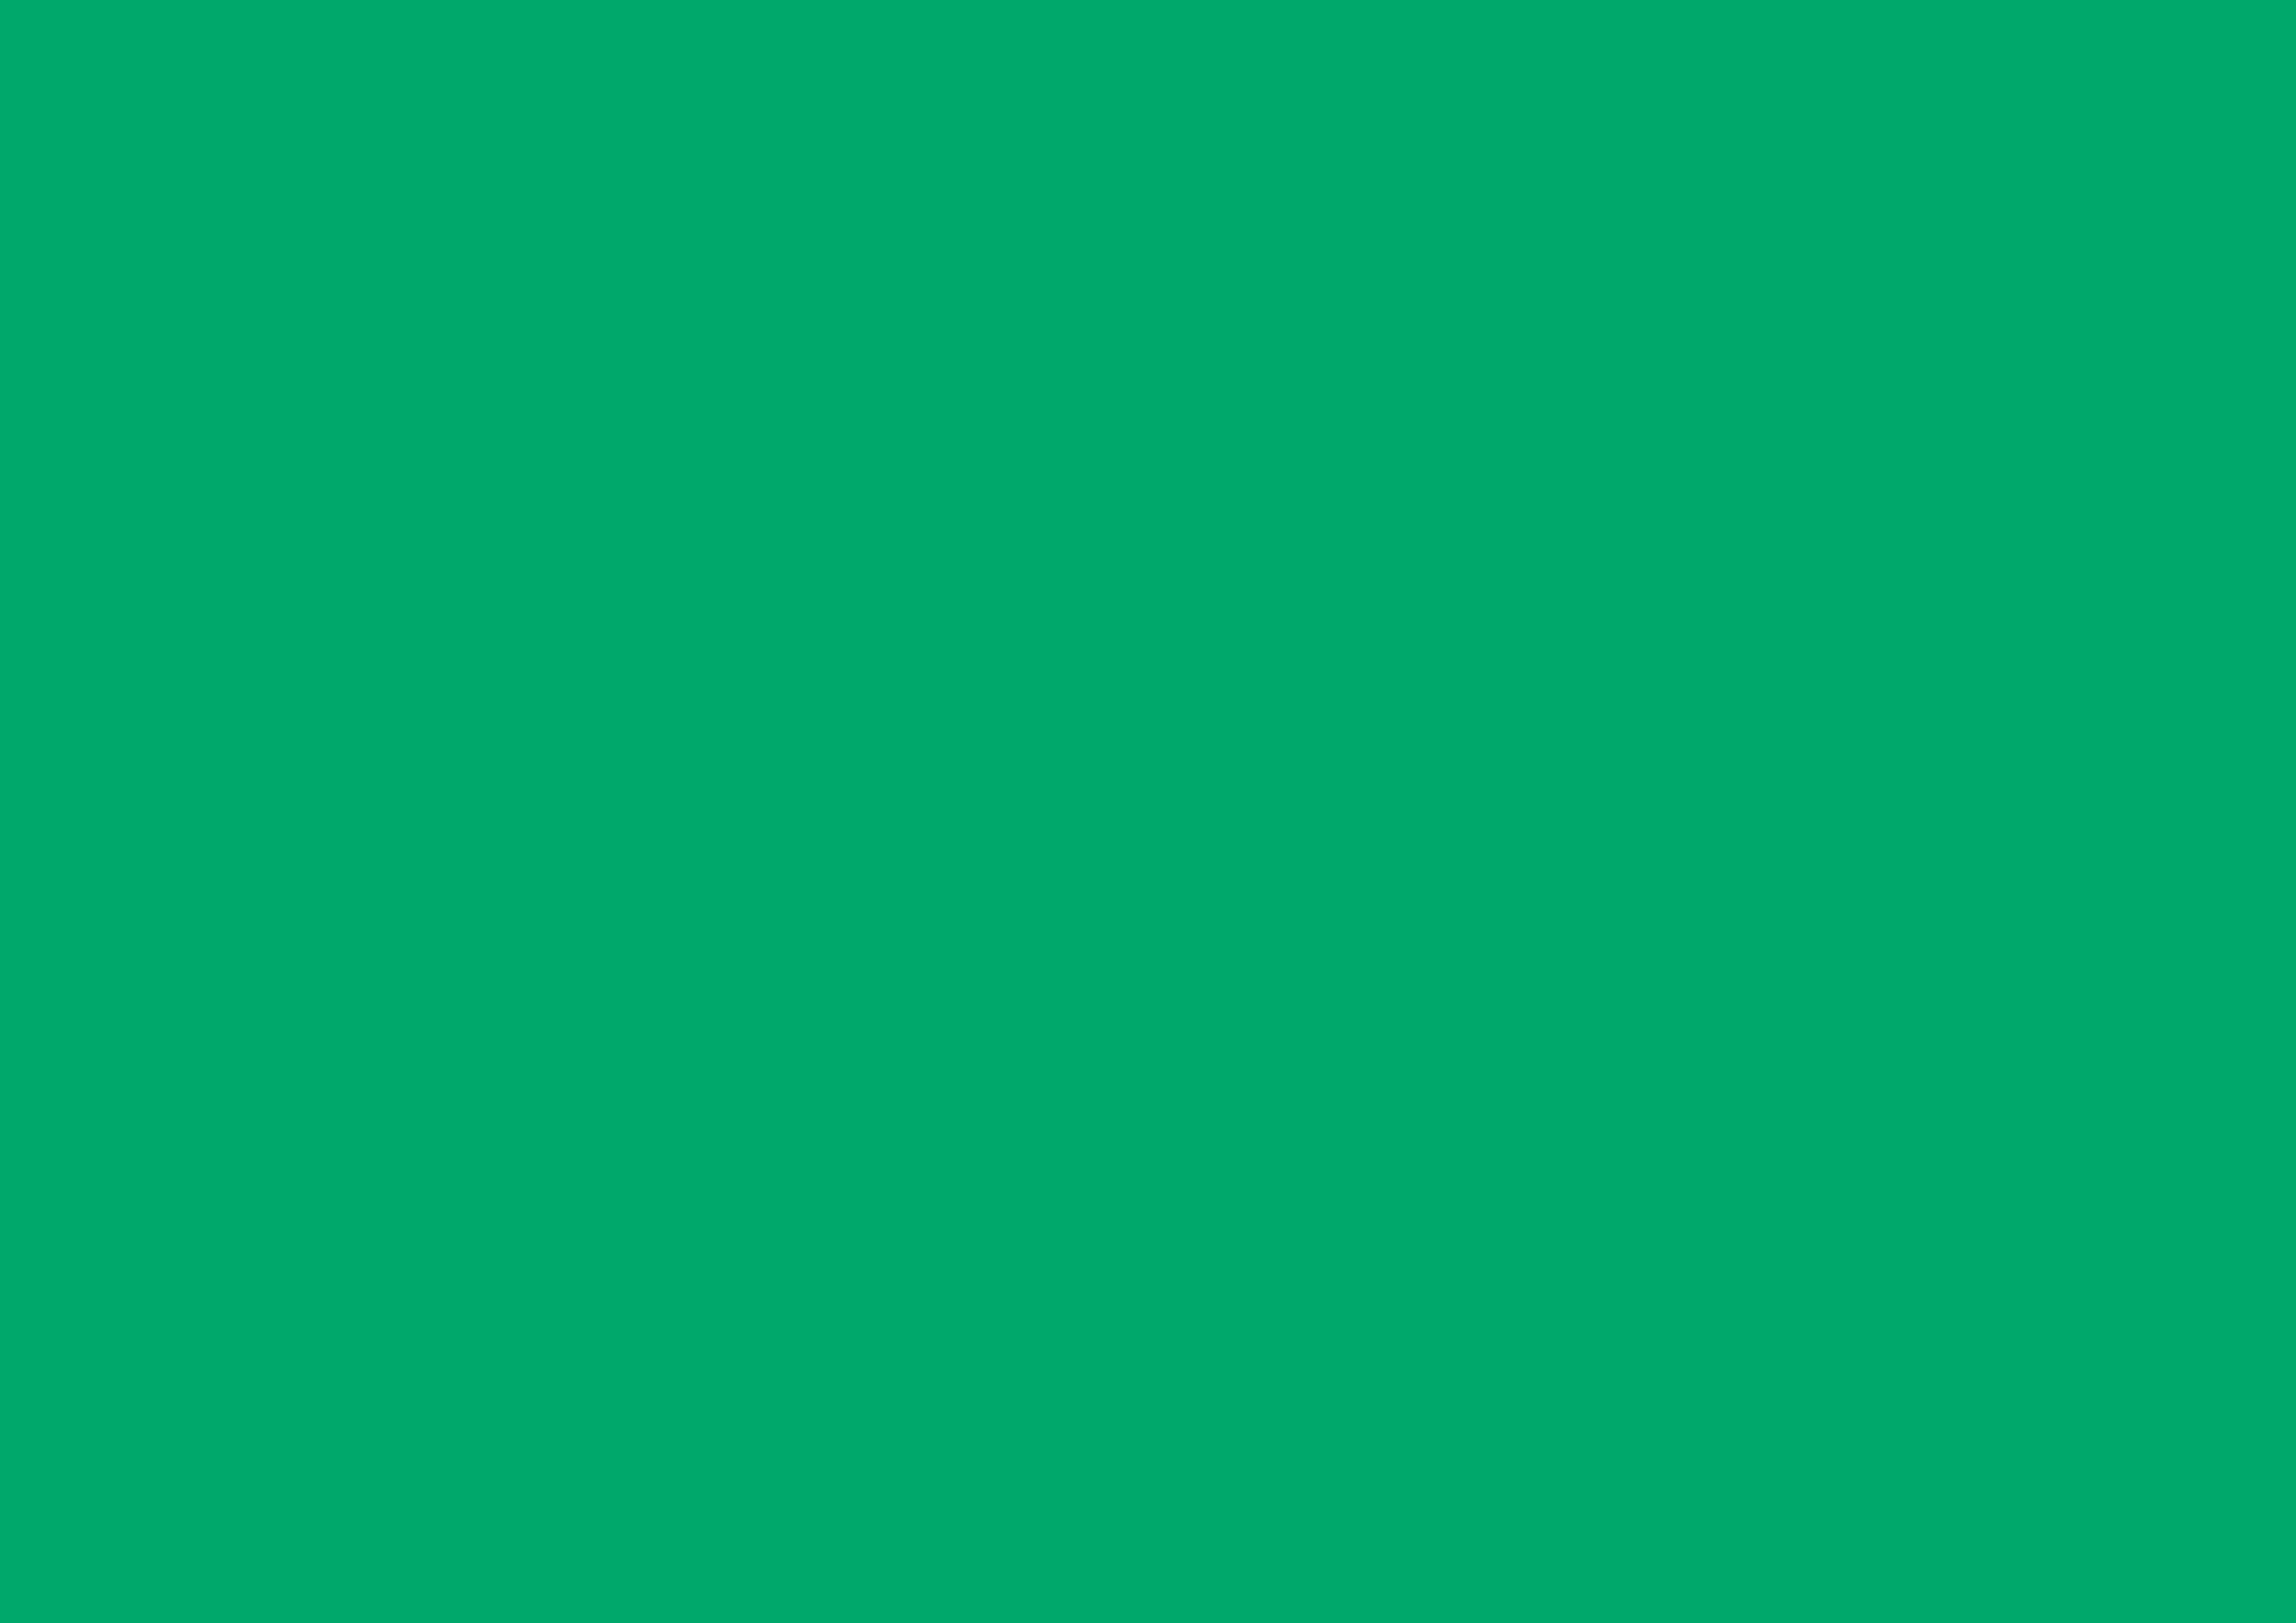 3508x2480 Jade Solid Color Background